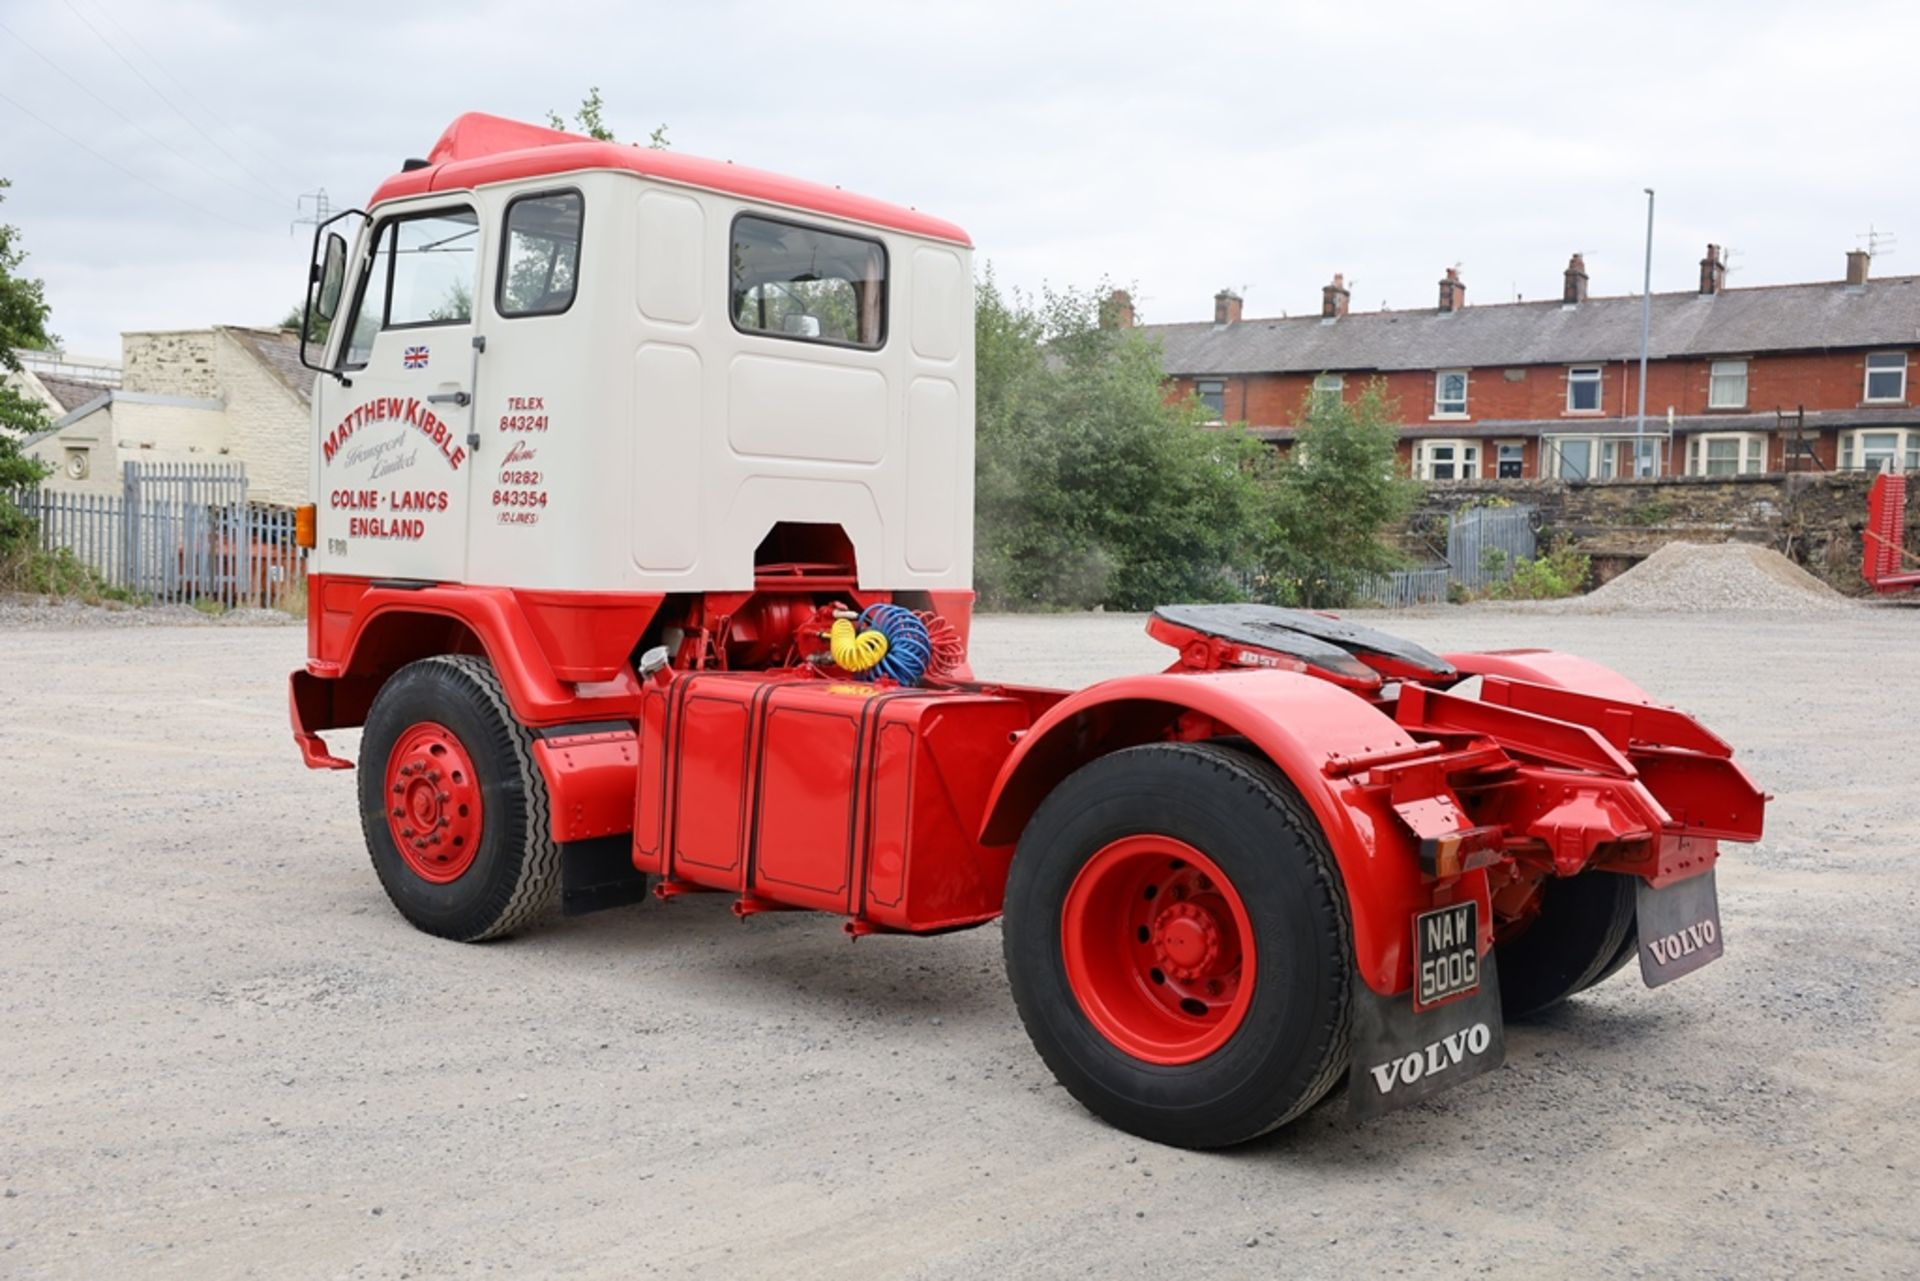 Volvo F88.240 4X2 TRACTOR UNIT, registration no. NAW 500G, date first registered 13/08/1968, fully - Image 5 of 11